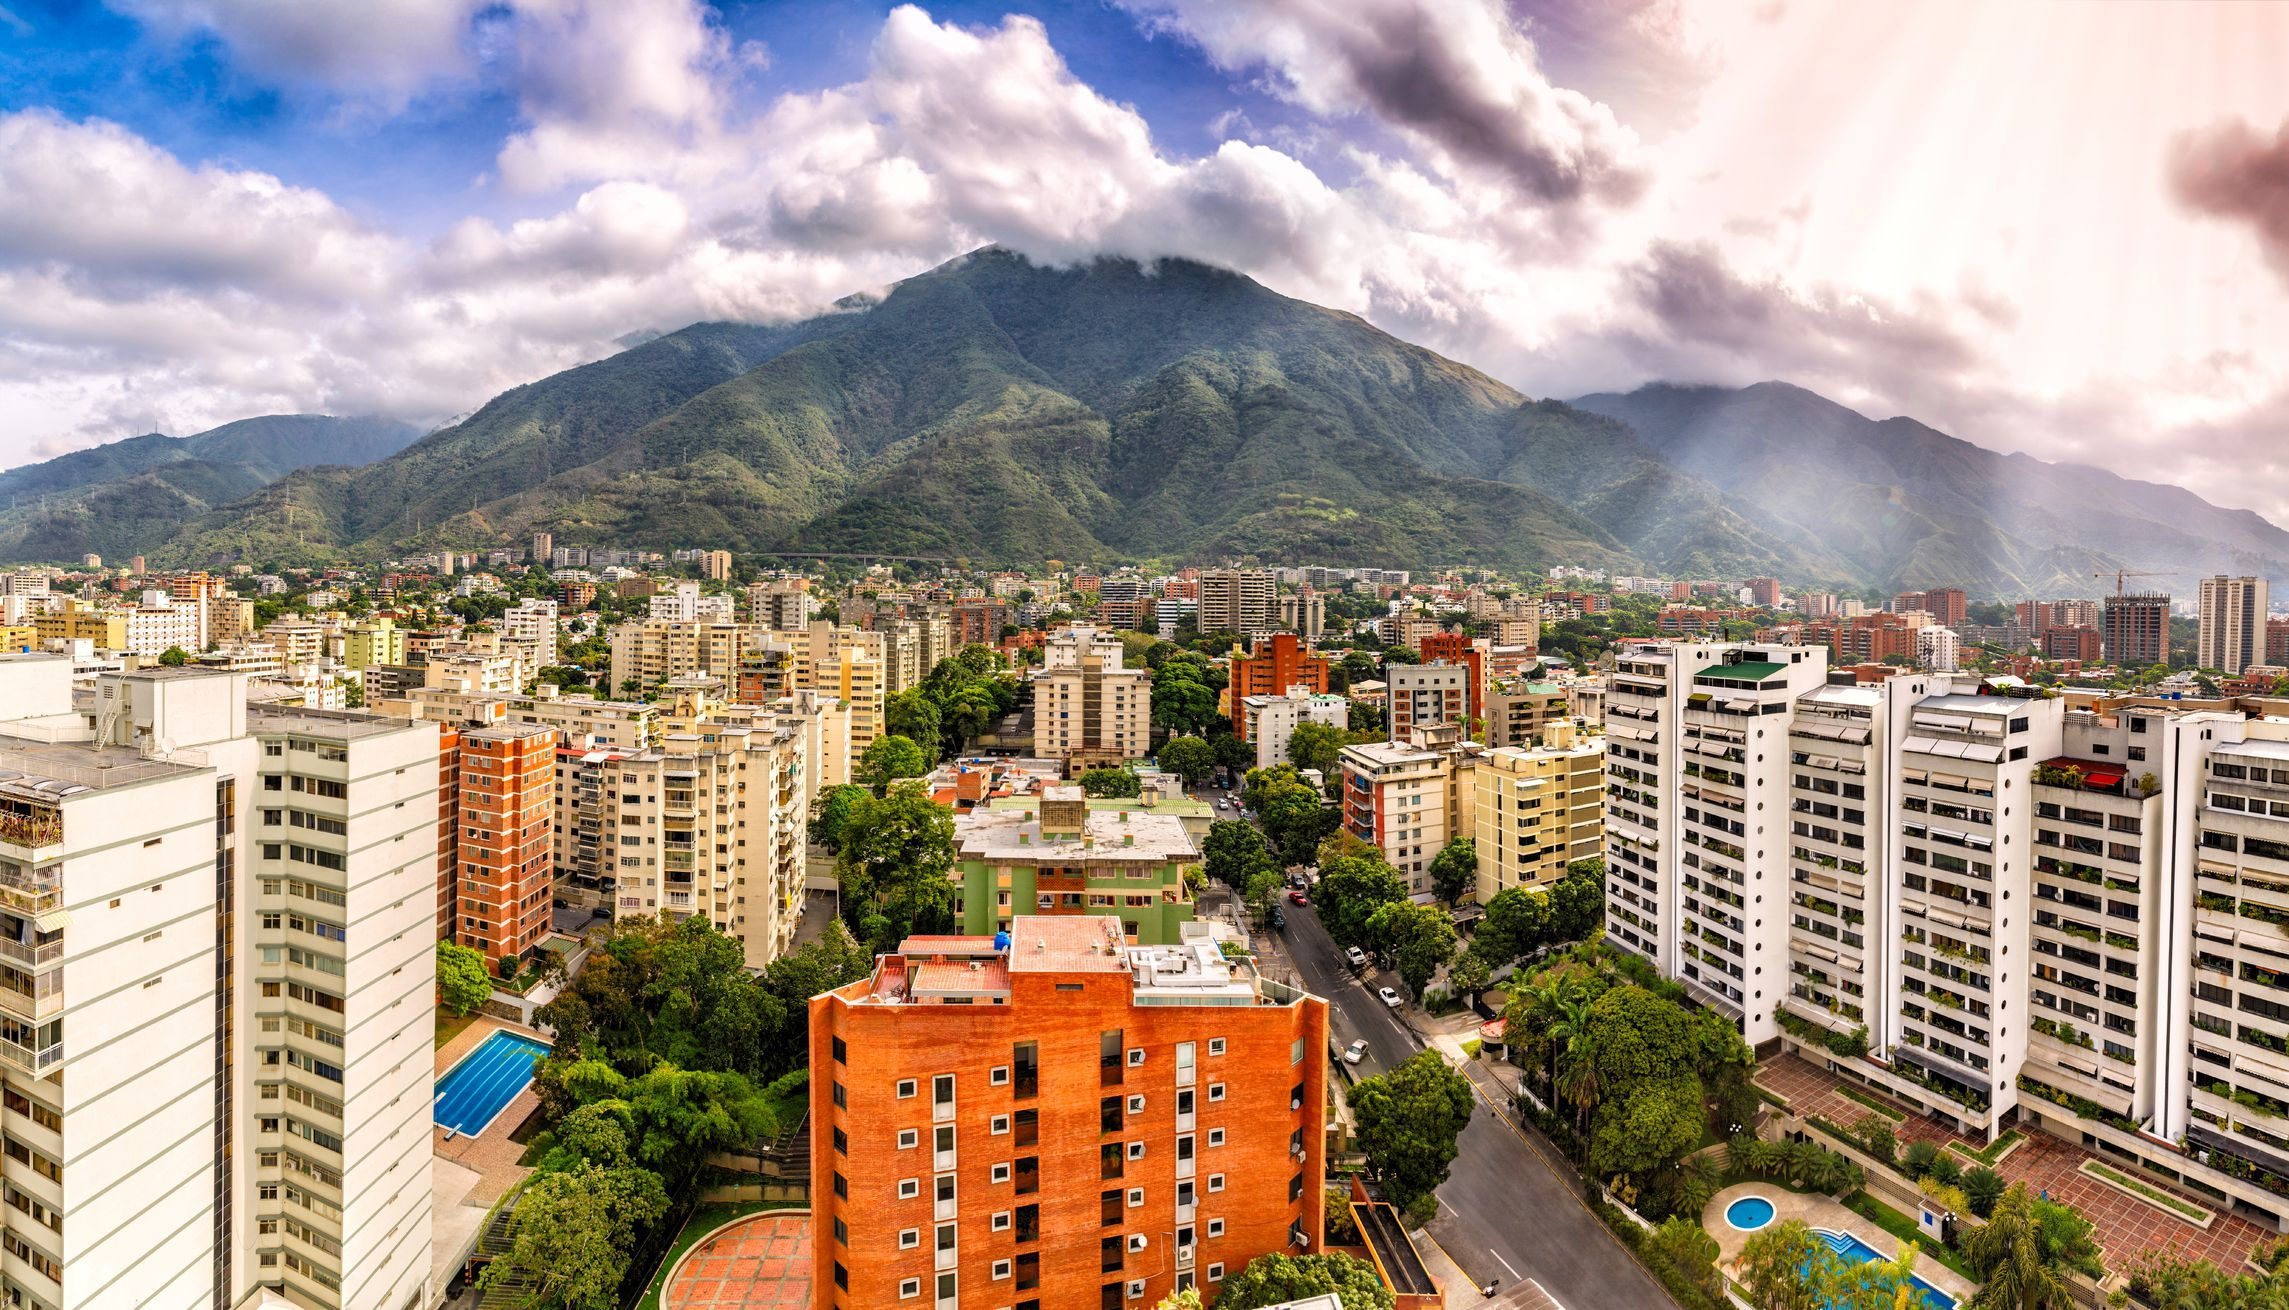 Best Places To Go In Caracas Venezuela In 2020 Places To Go Caracas World Cities